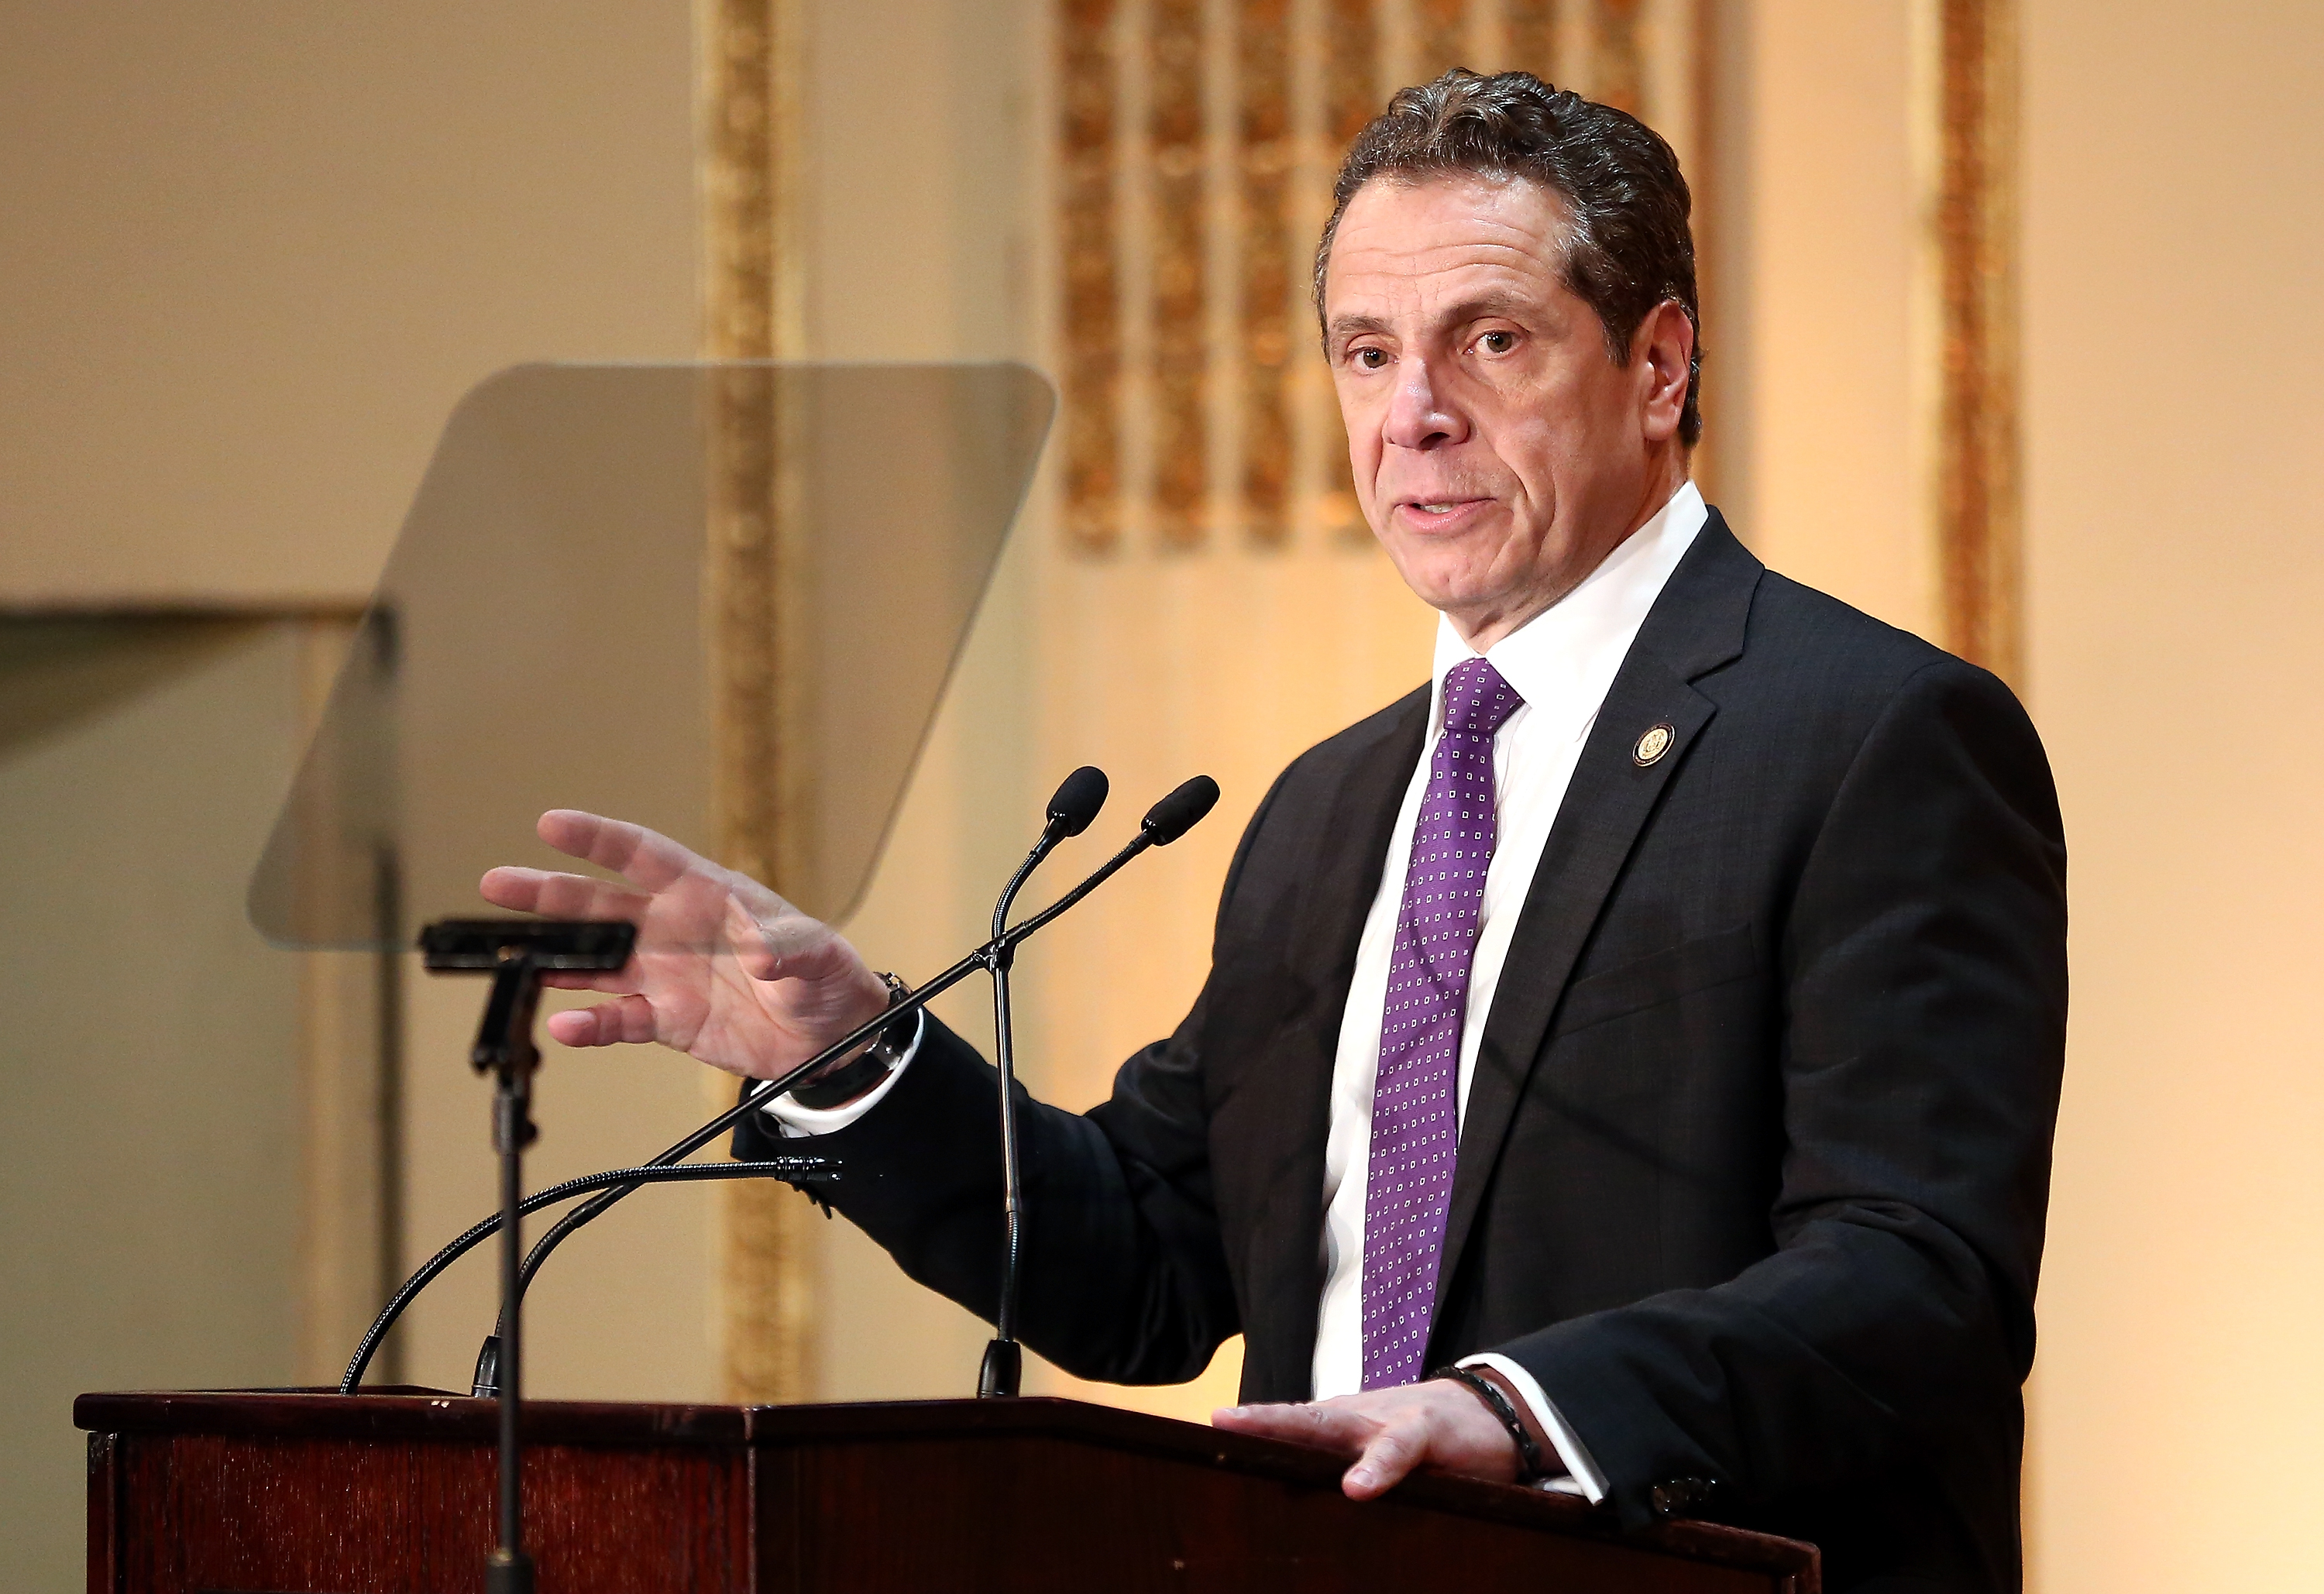 Governor of New York State Andrew Cuomo speaks on stage at the HELP USA 30th Anniversary Event at The Plaza Hotel on March 16, 2017 in New York City. (Photo by Monica Schipper/Getty Images)